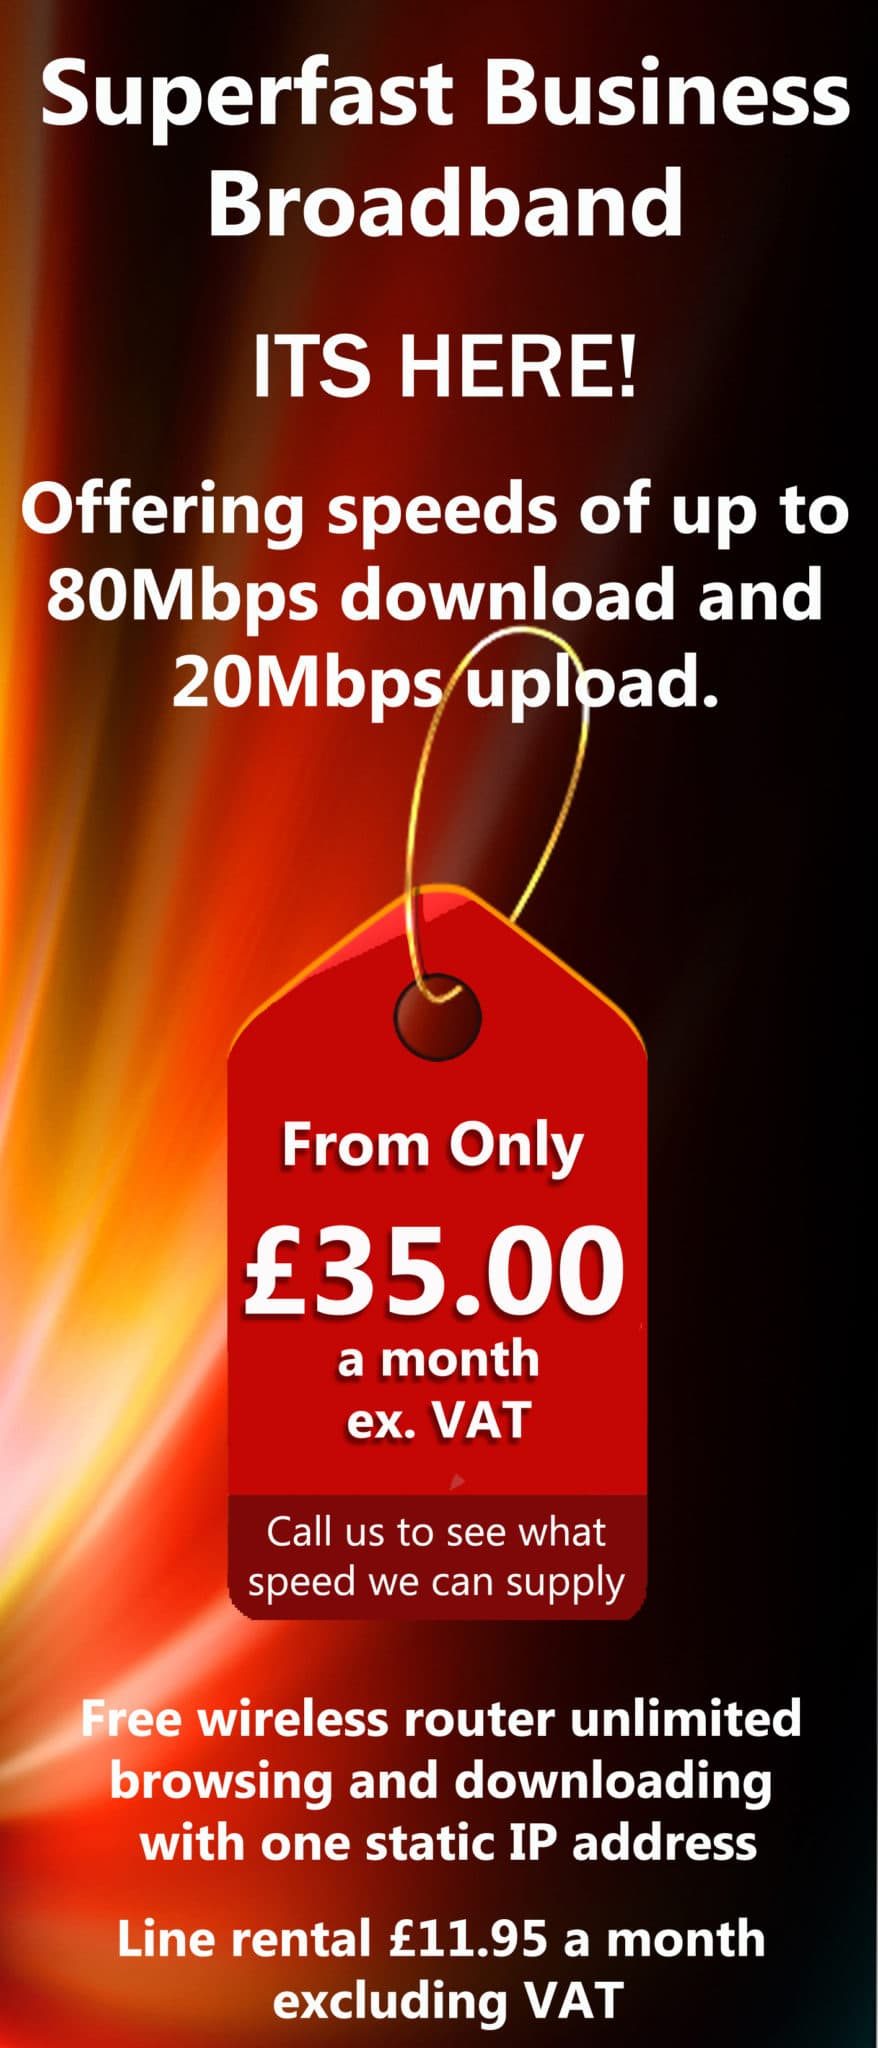 Superfast Broadband